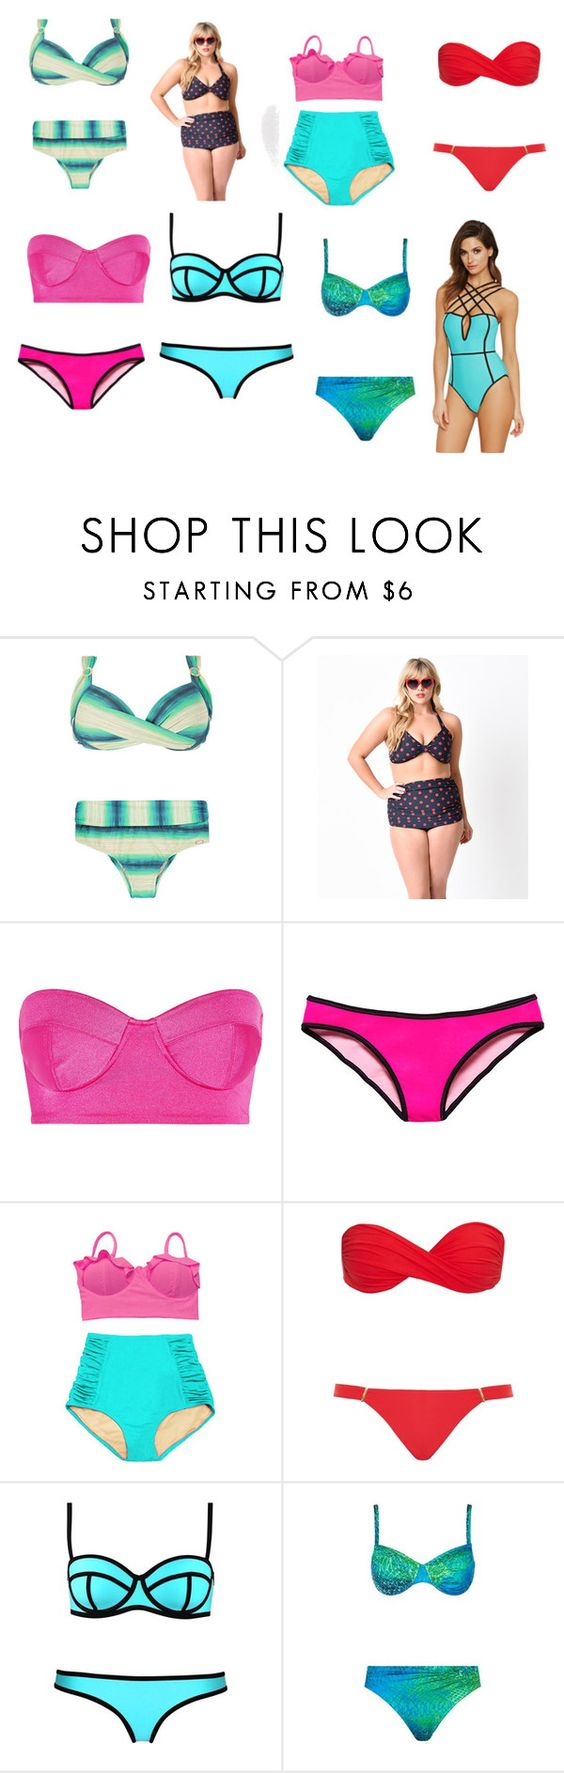 """""""summer swim day"""" by shoelover-123 ❤ liked on Polyvore featuring Esther Williams, Norma Kamali, Victoria's Secret, Melissa Odabash, Maryan Mehlhorn and Forever 21"""